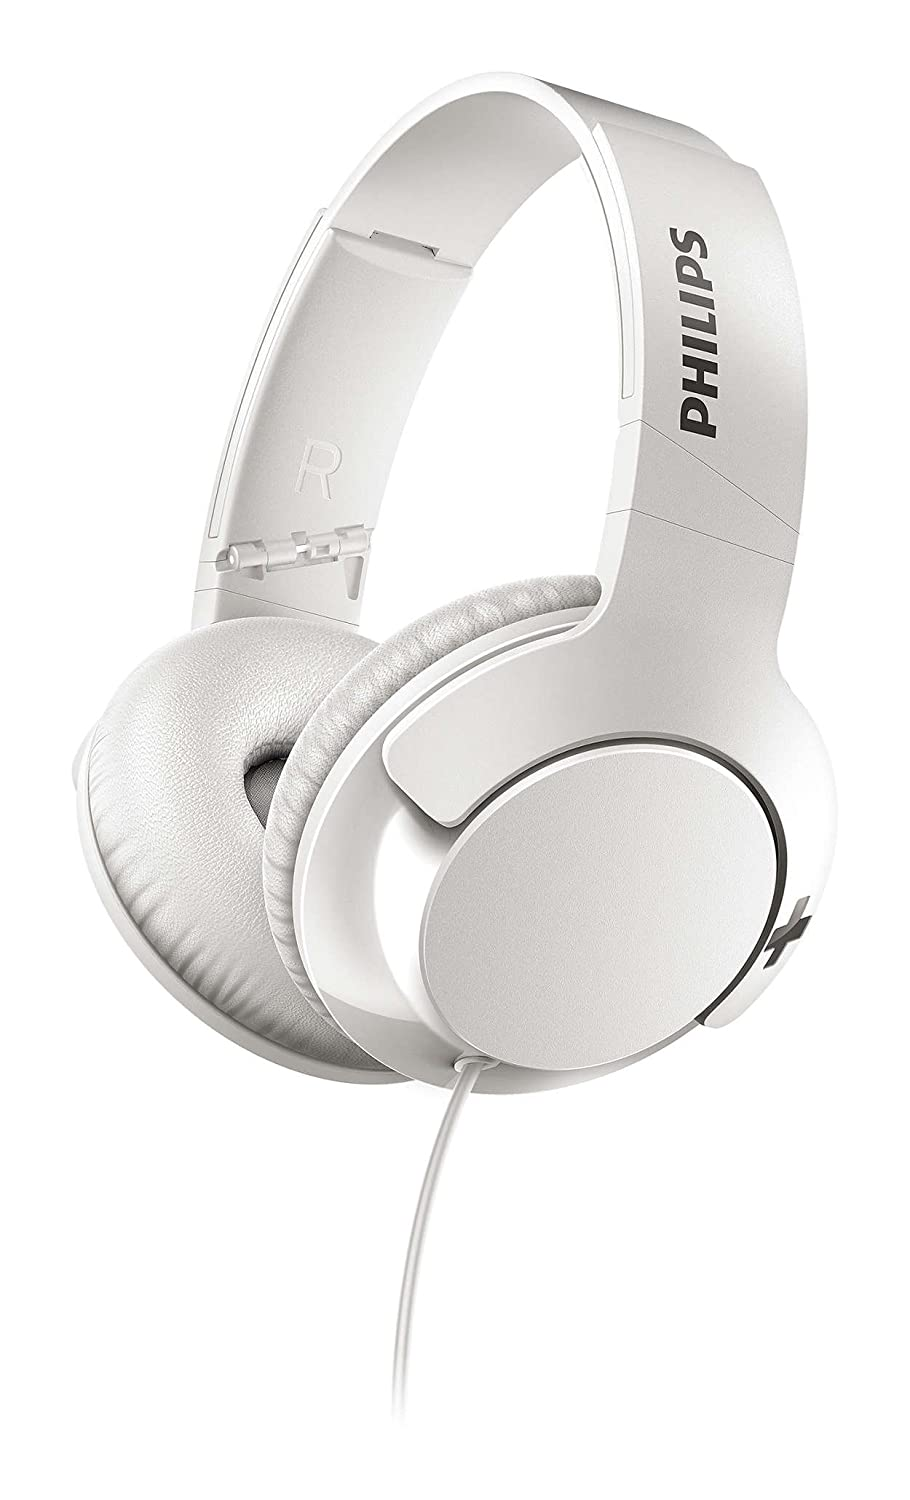 [amazon.de] Philips Bass+ Over Ear Kopfhörer um 11,99€ anstatt 25€